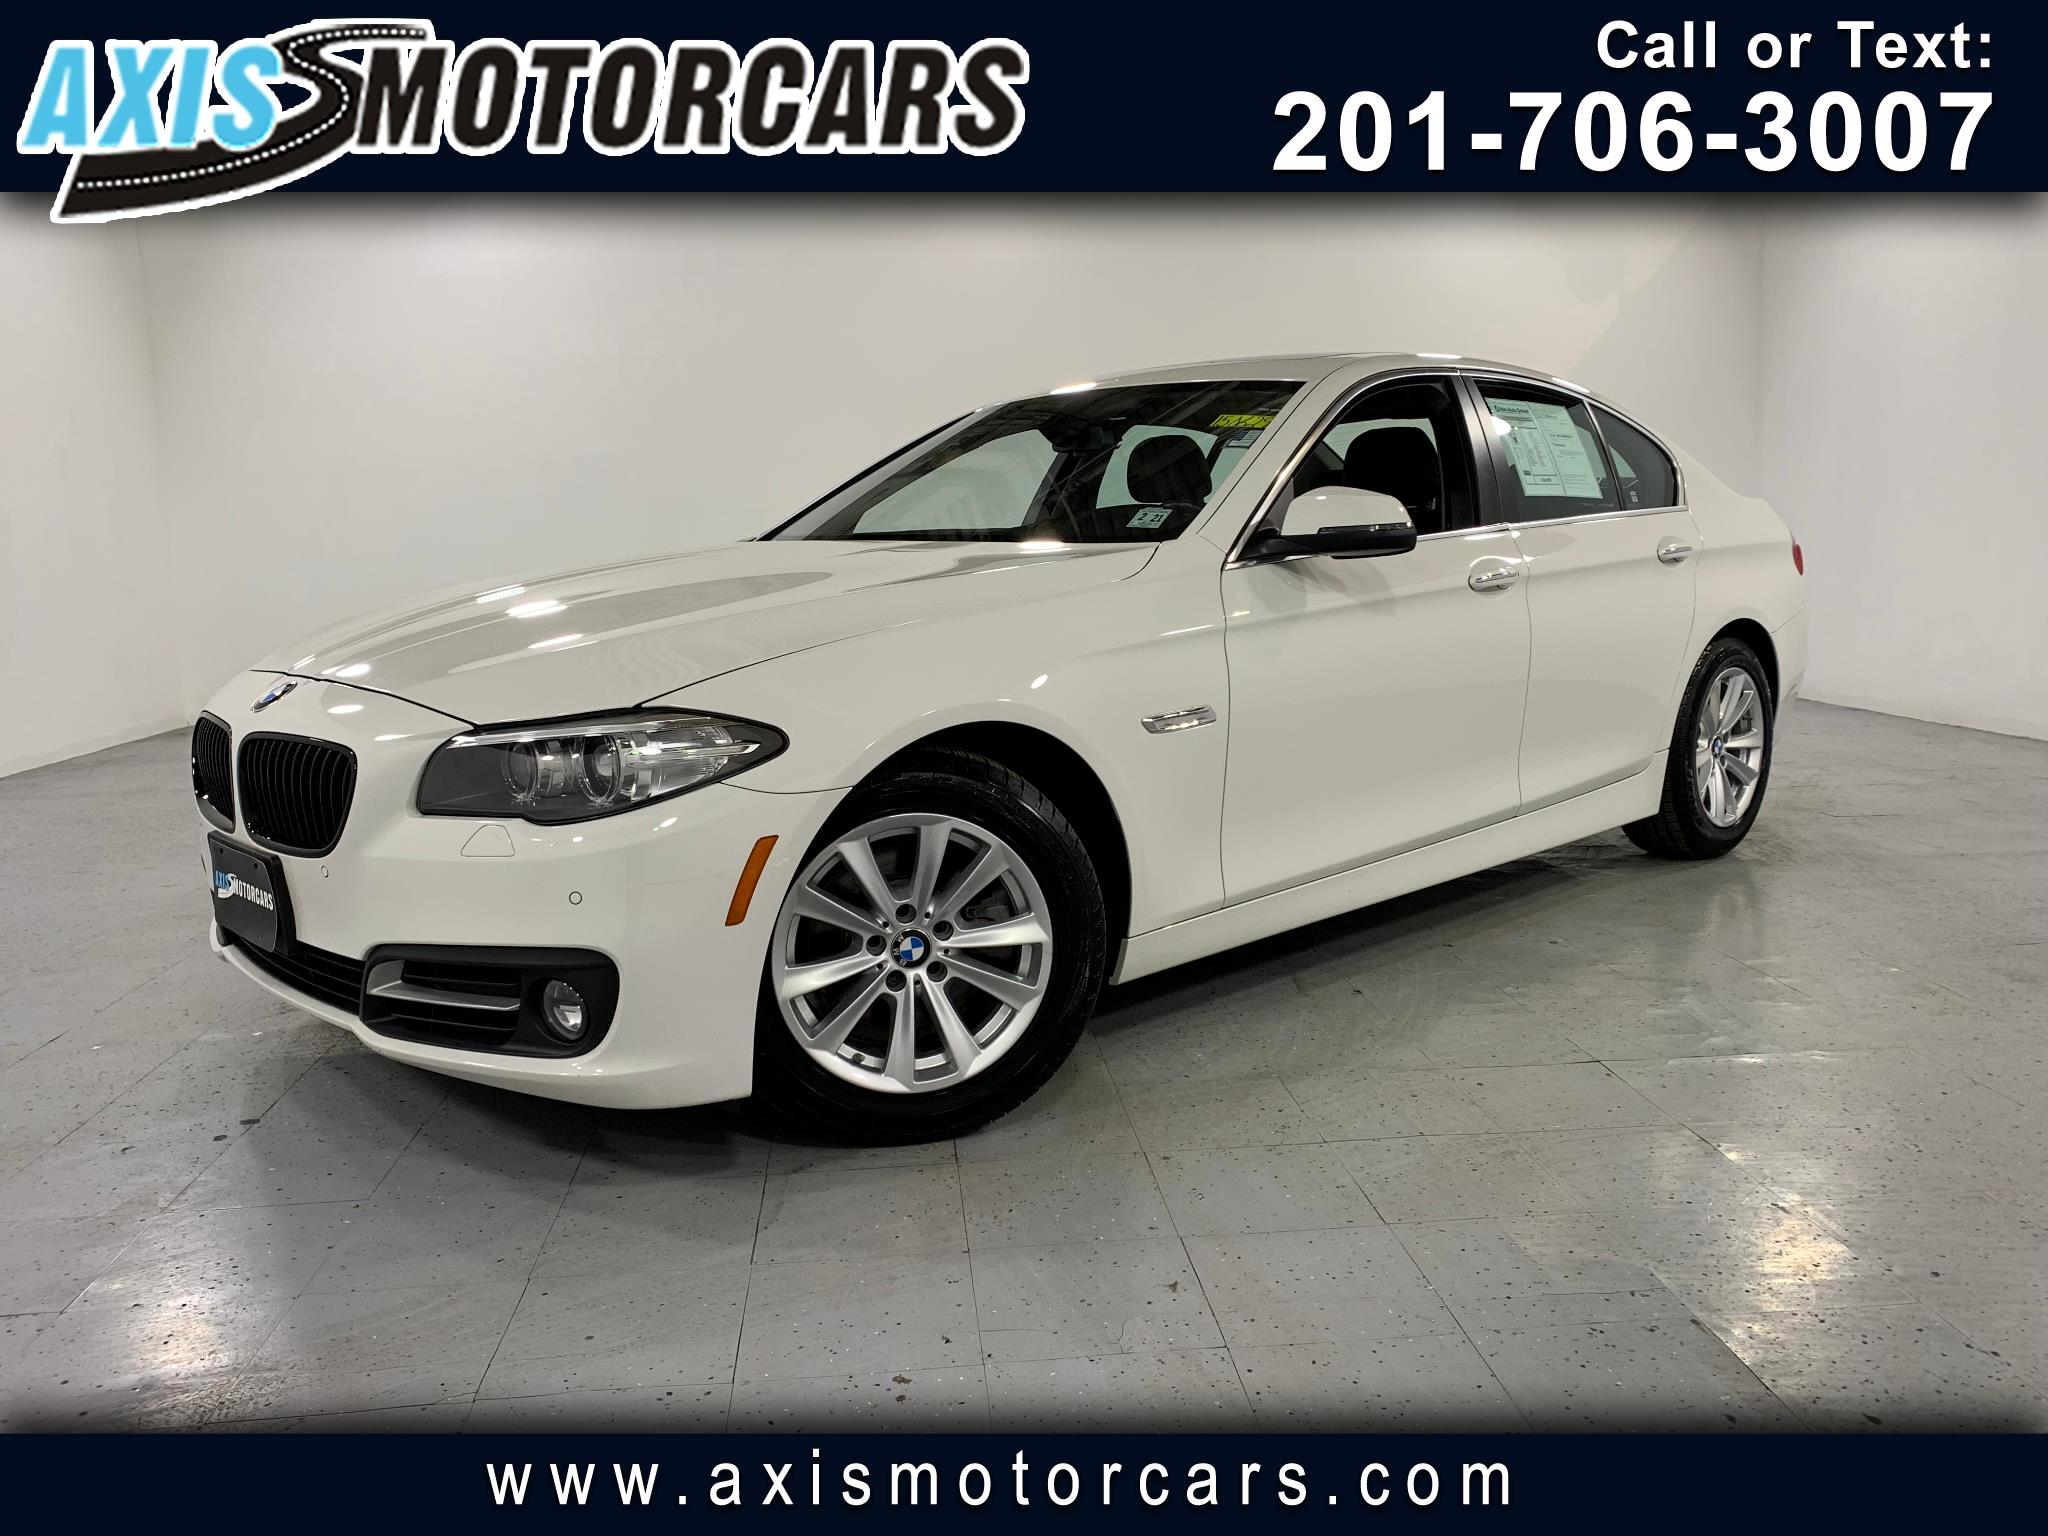 2016 BMW 528i w/Navigation Bakup Camera Sunroof